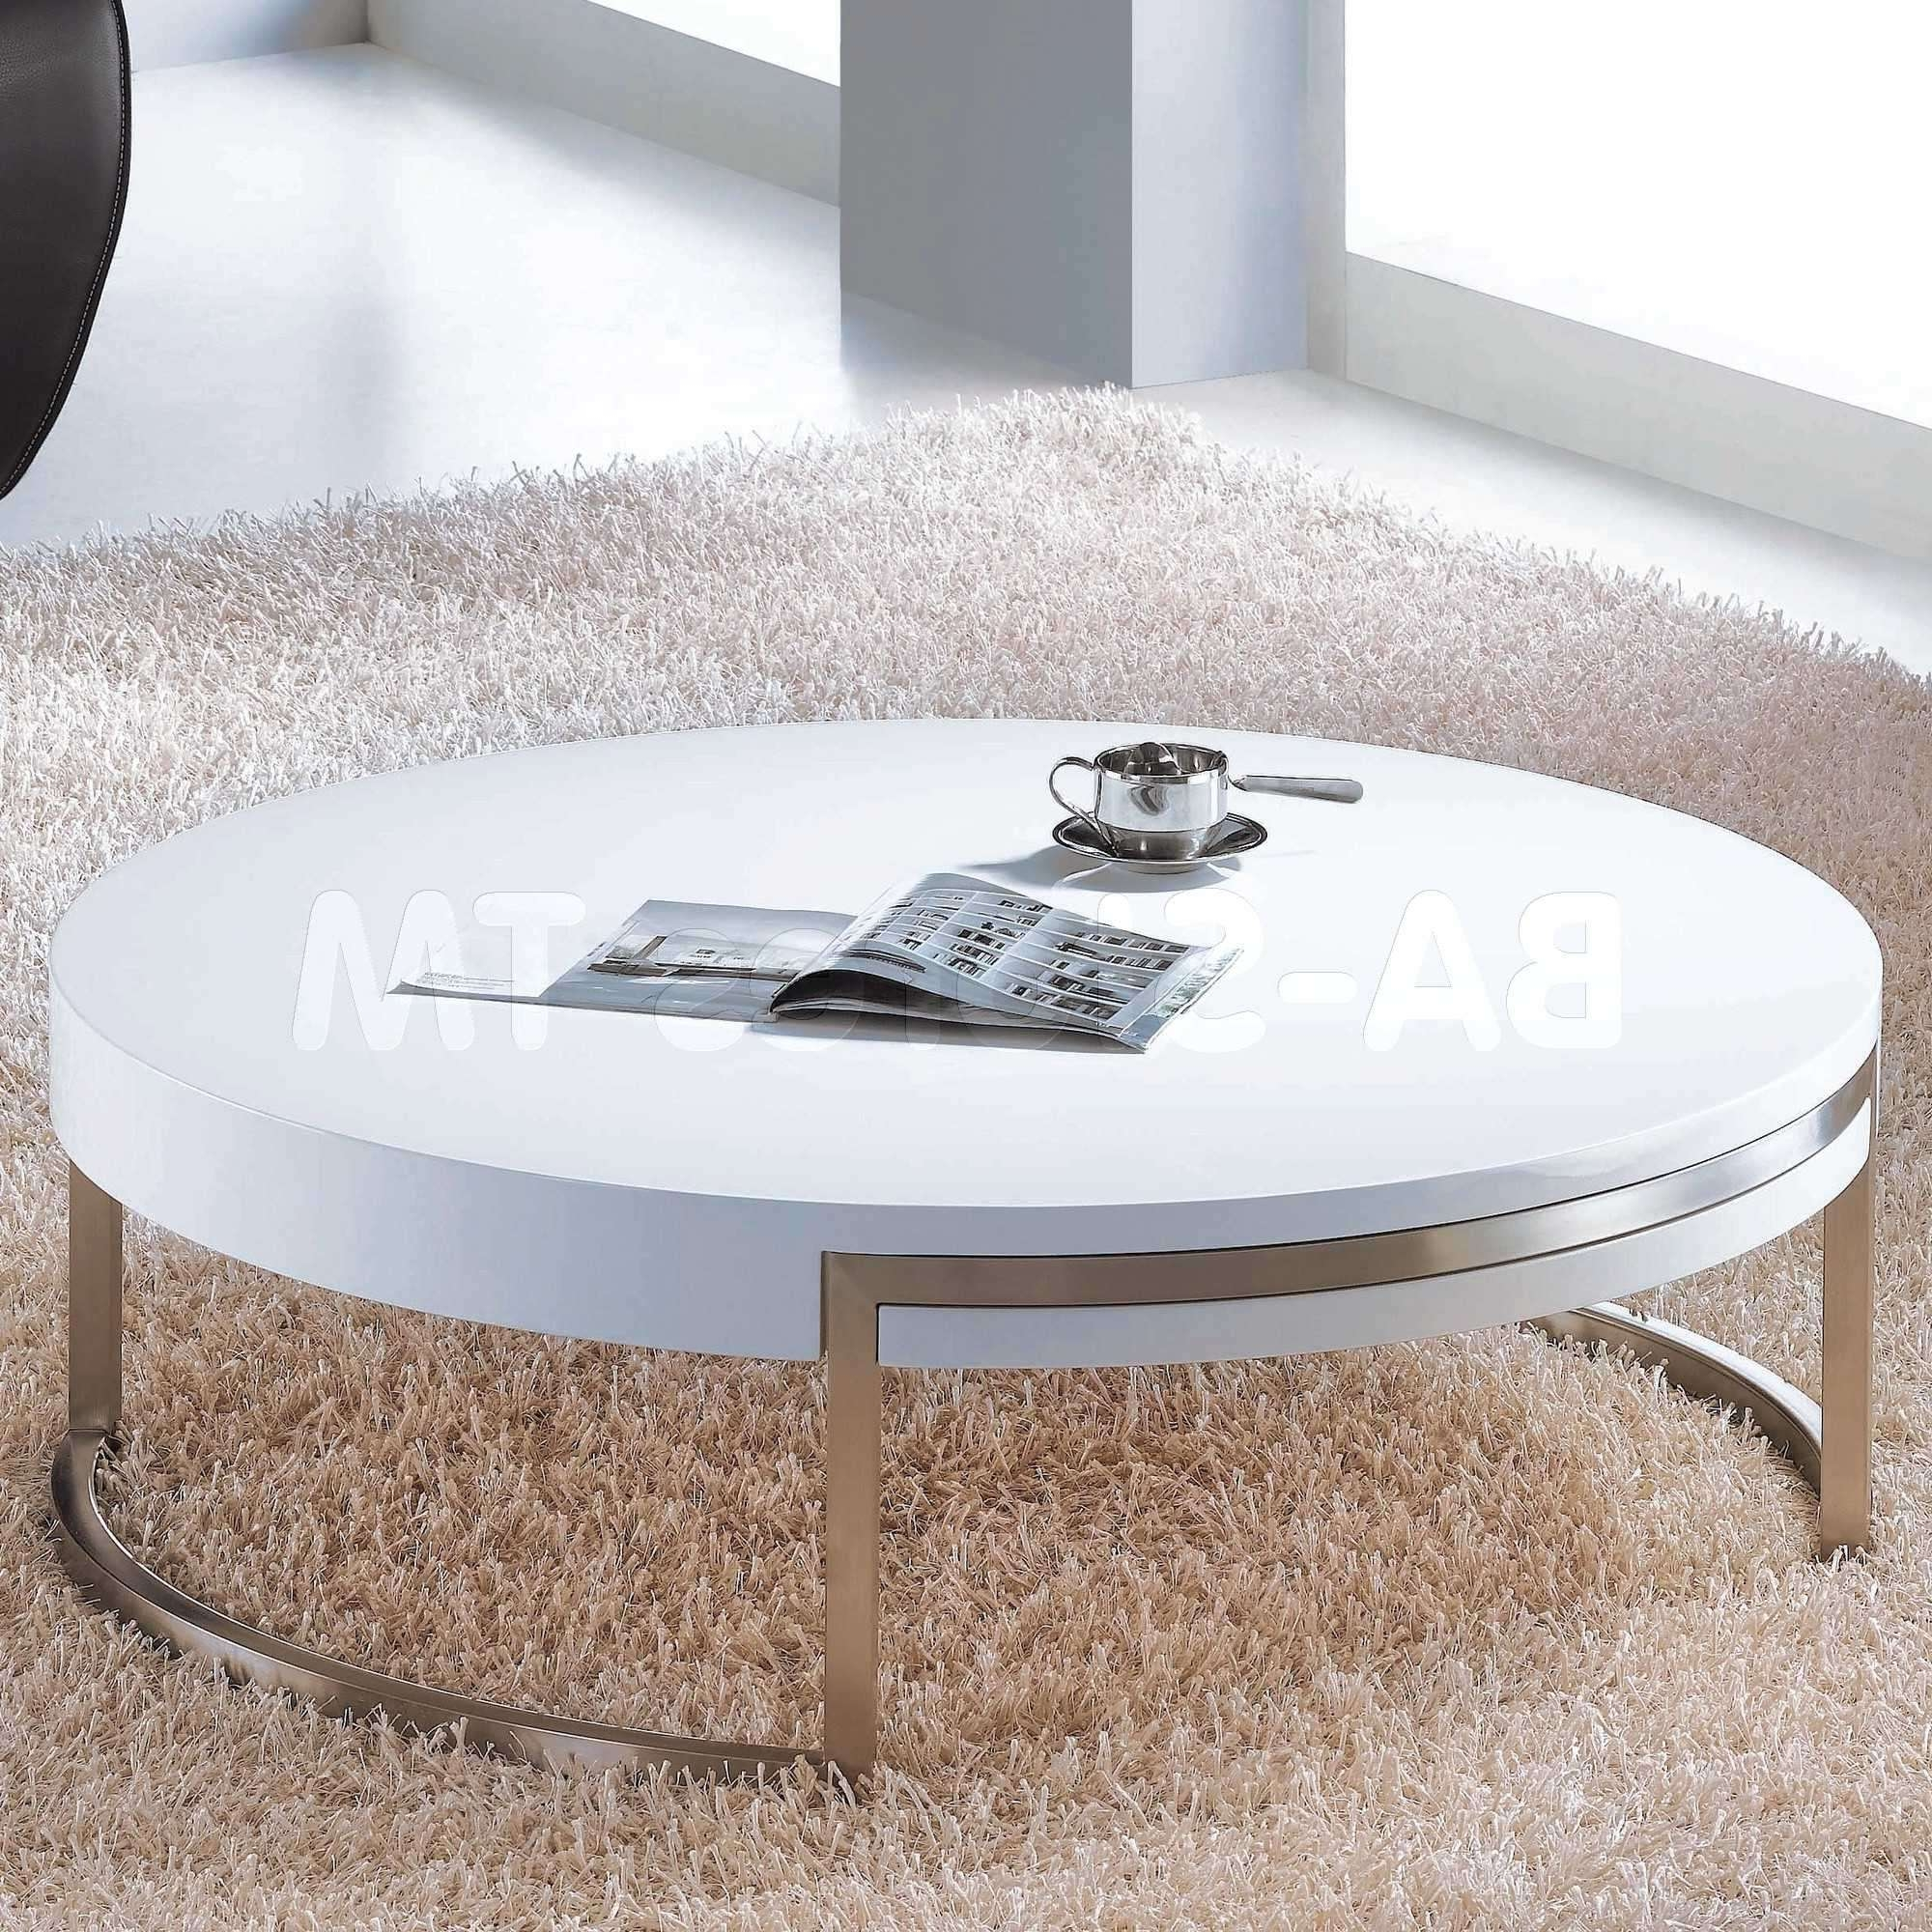 High Gloss White Coffee Table Round Angle Black Glass Top: White Gloss Oval Coffee Table